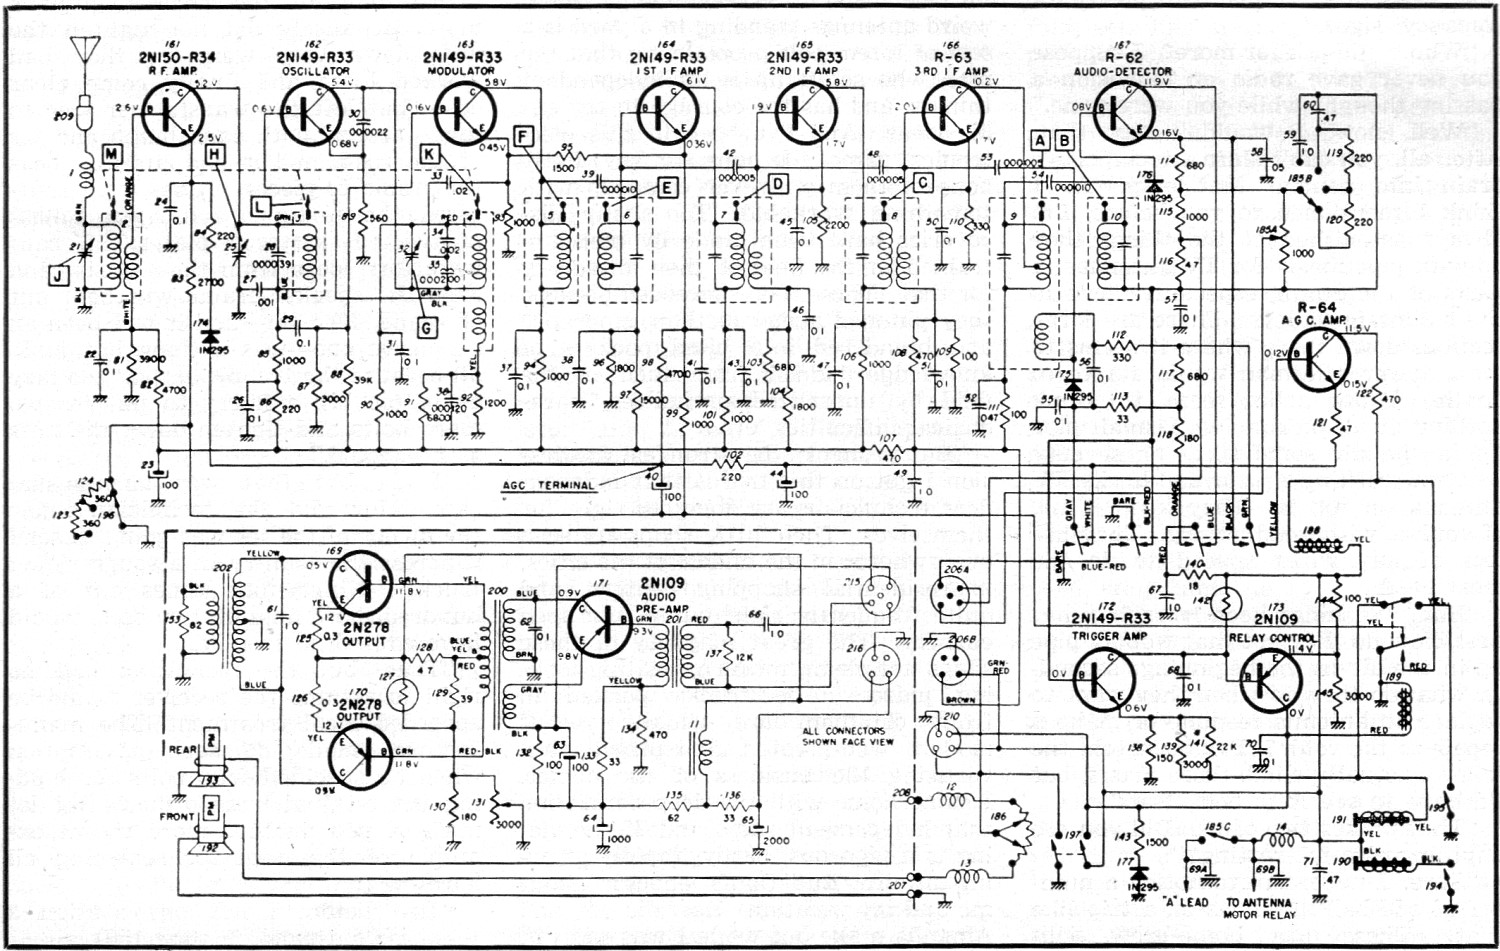 delco radio schematics wiring diagramgm delco radio schematics wiring diagram data schema